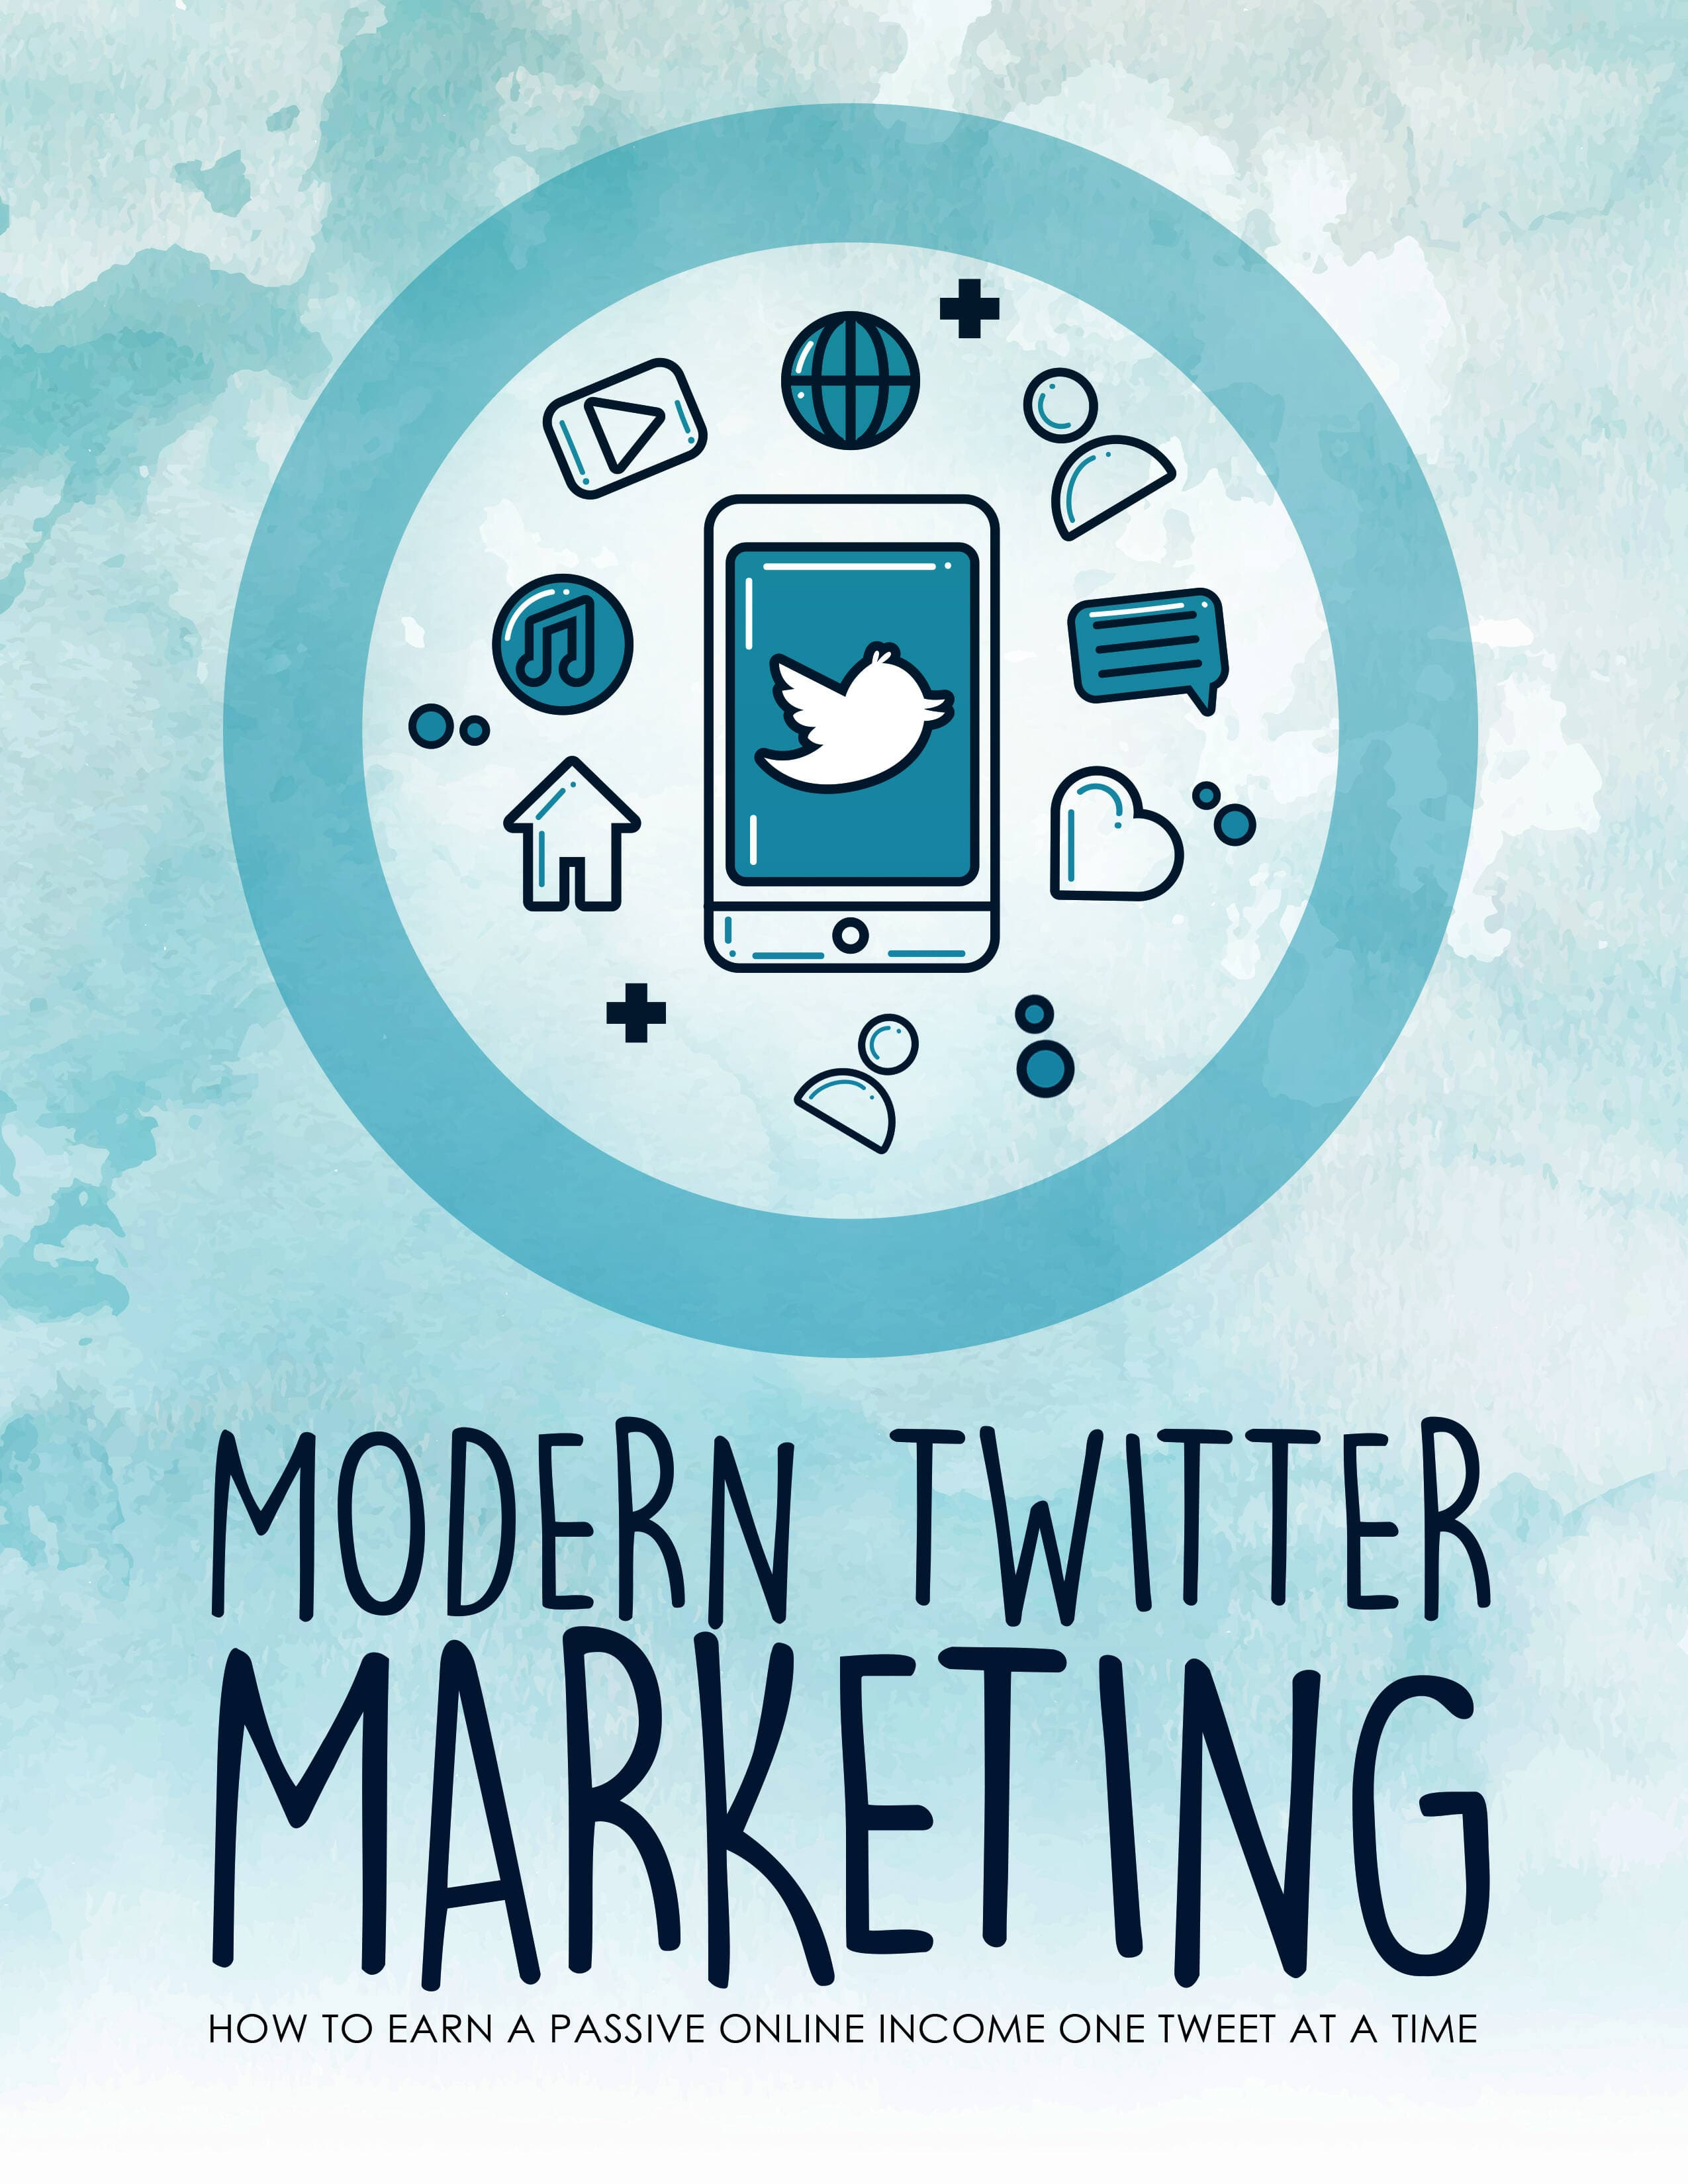 Modern Twitter Marketing (How To Earn A Passive Online Income One Tweet At A Time) Ebook's Ebook Image